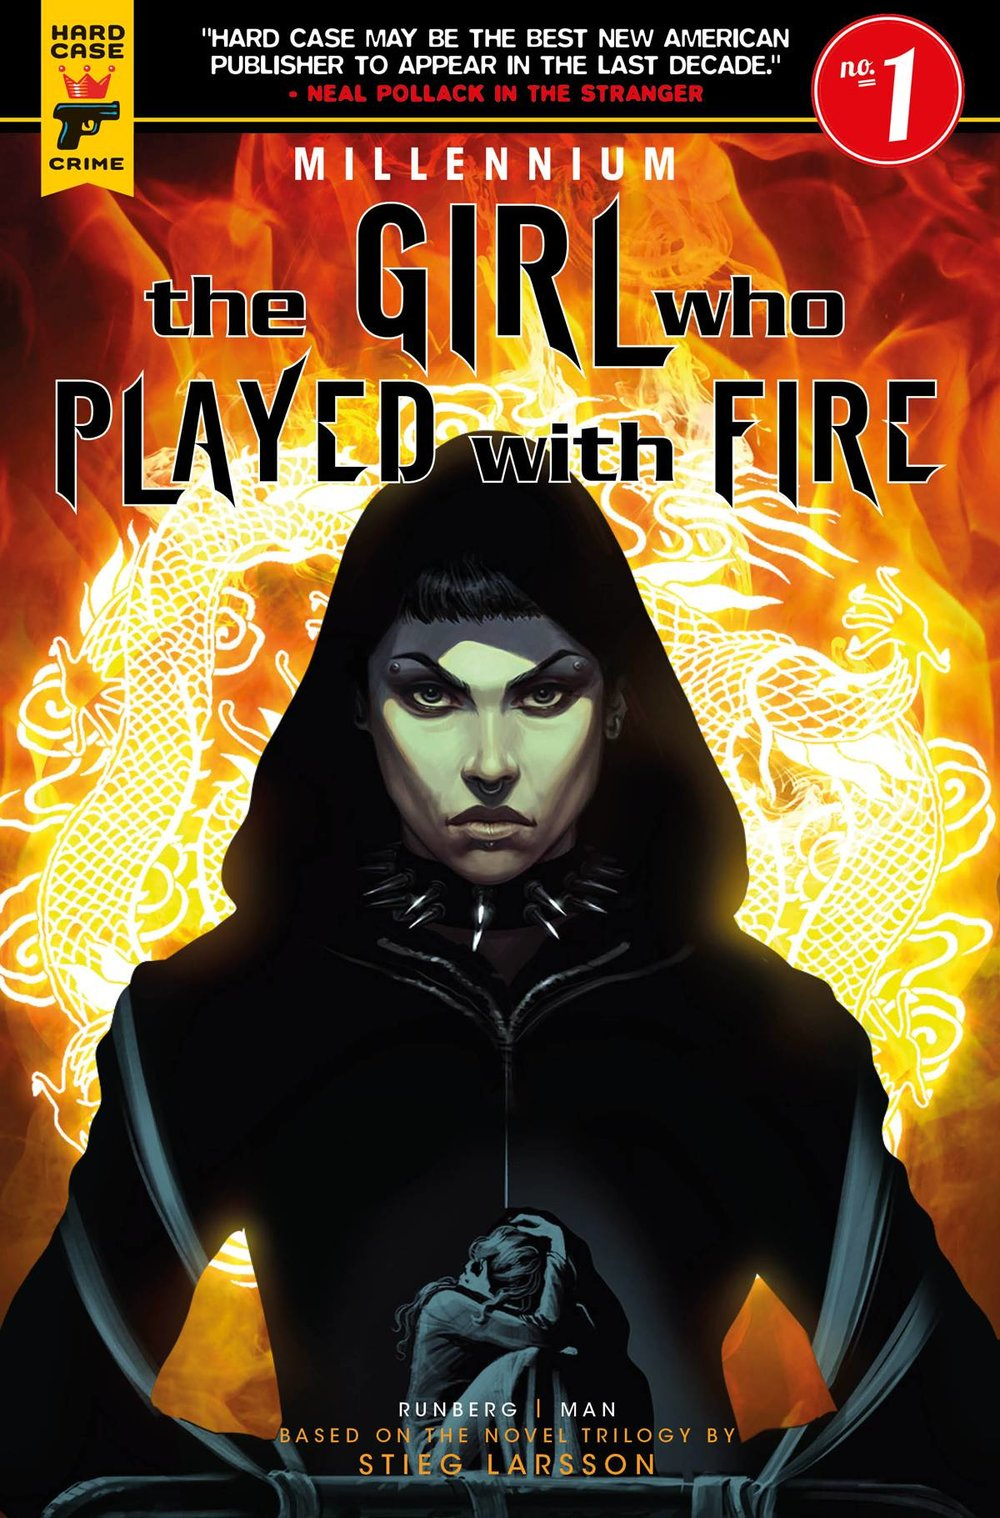 MILLENNIUM GIRL WHO PLAYED WITH FIRE 1 of 2 CVR A IANNICIELLO.jpg